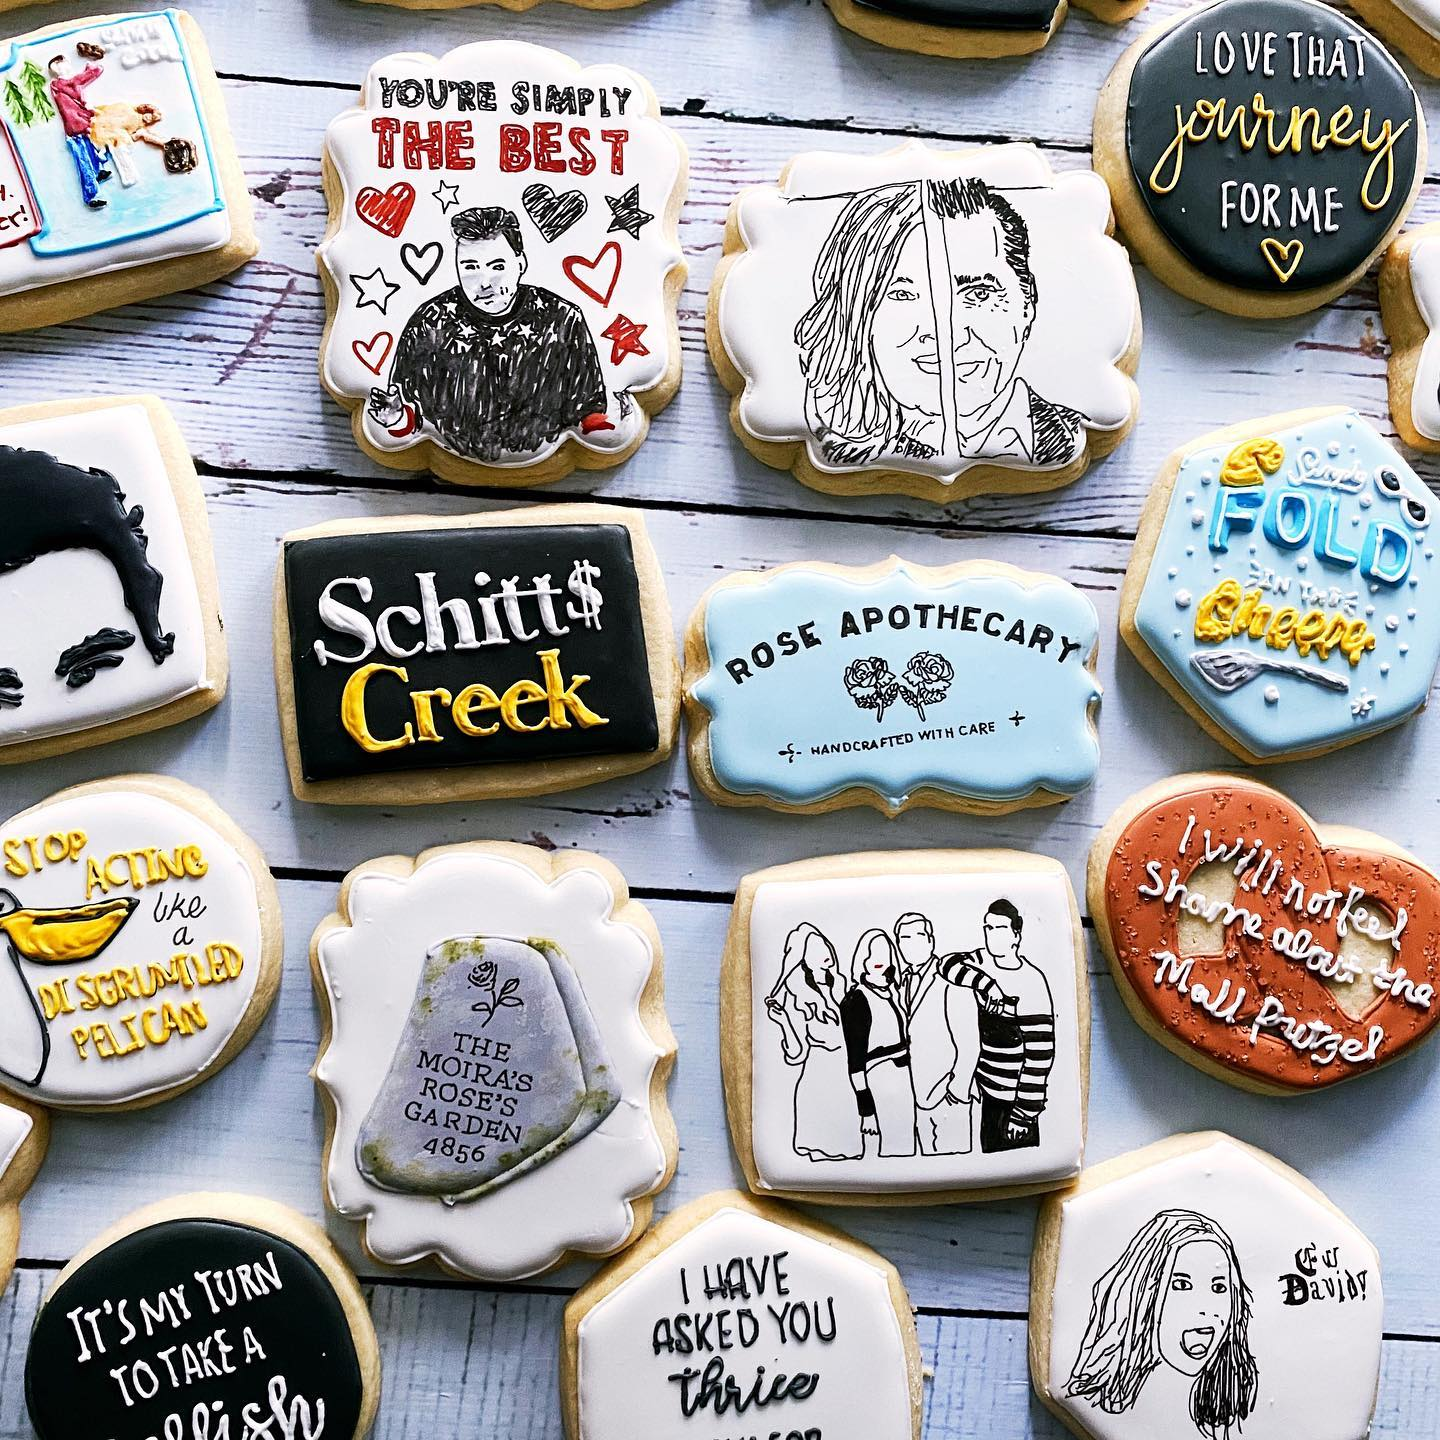 Schitt's Creek Cookies